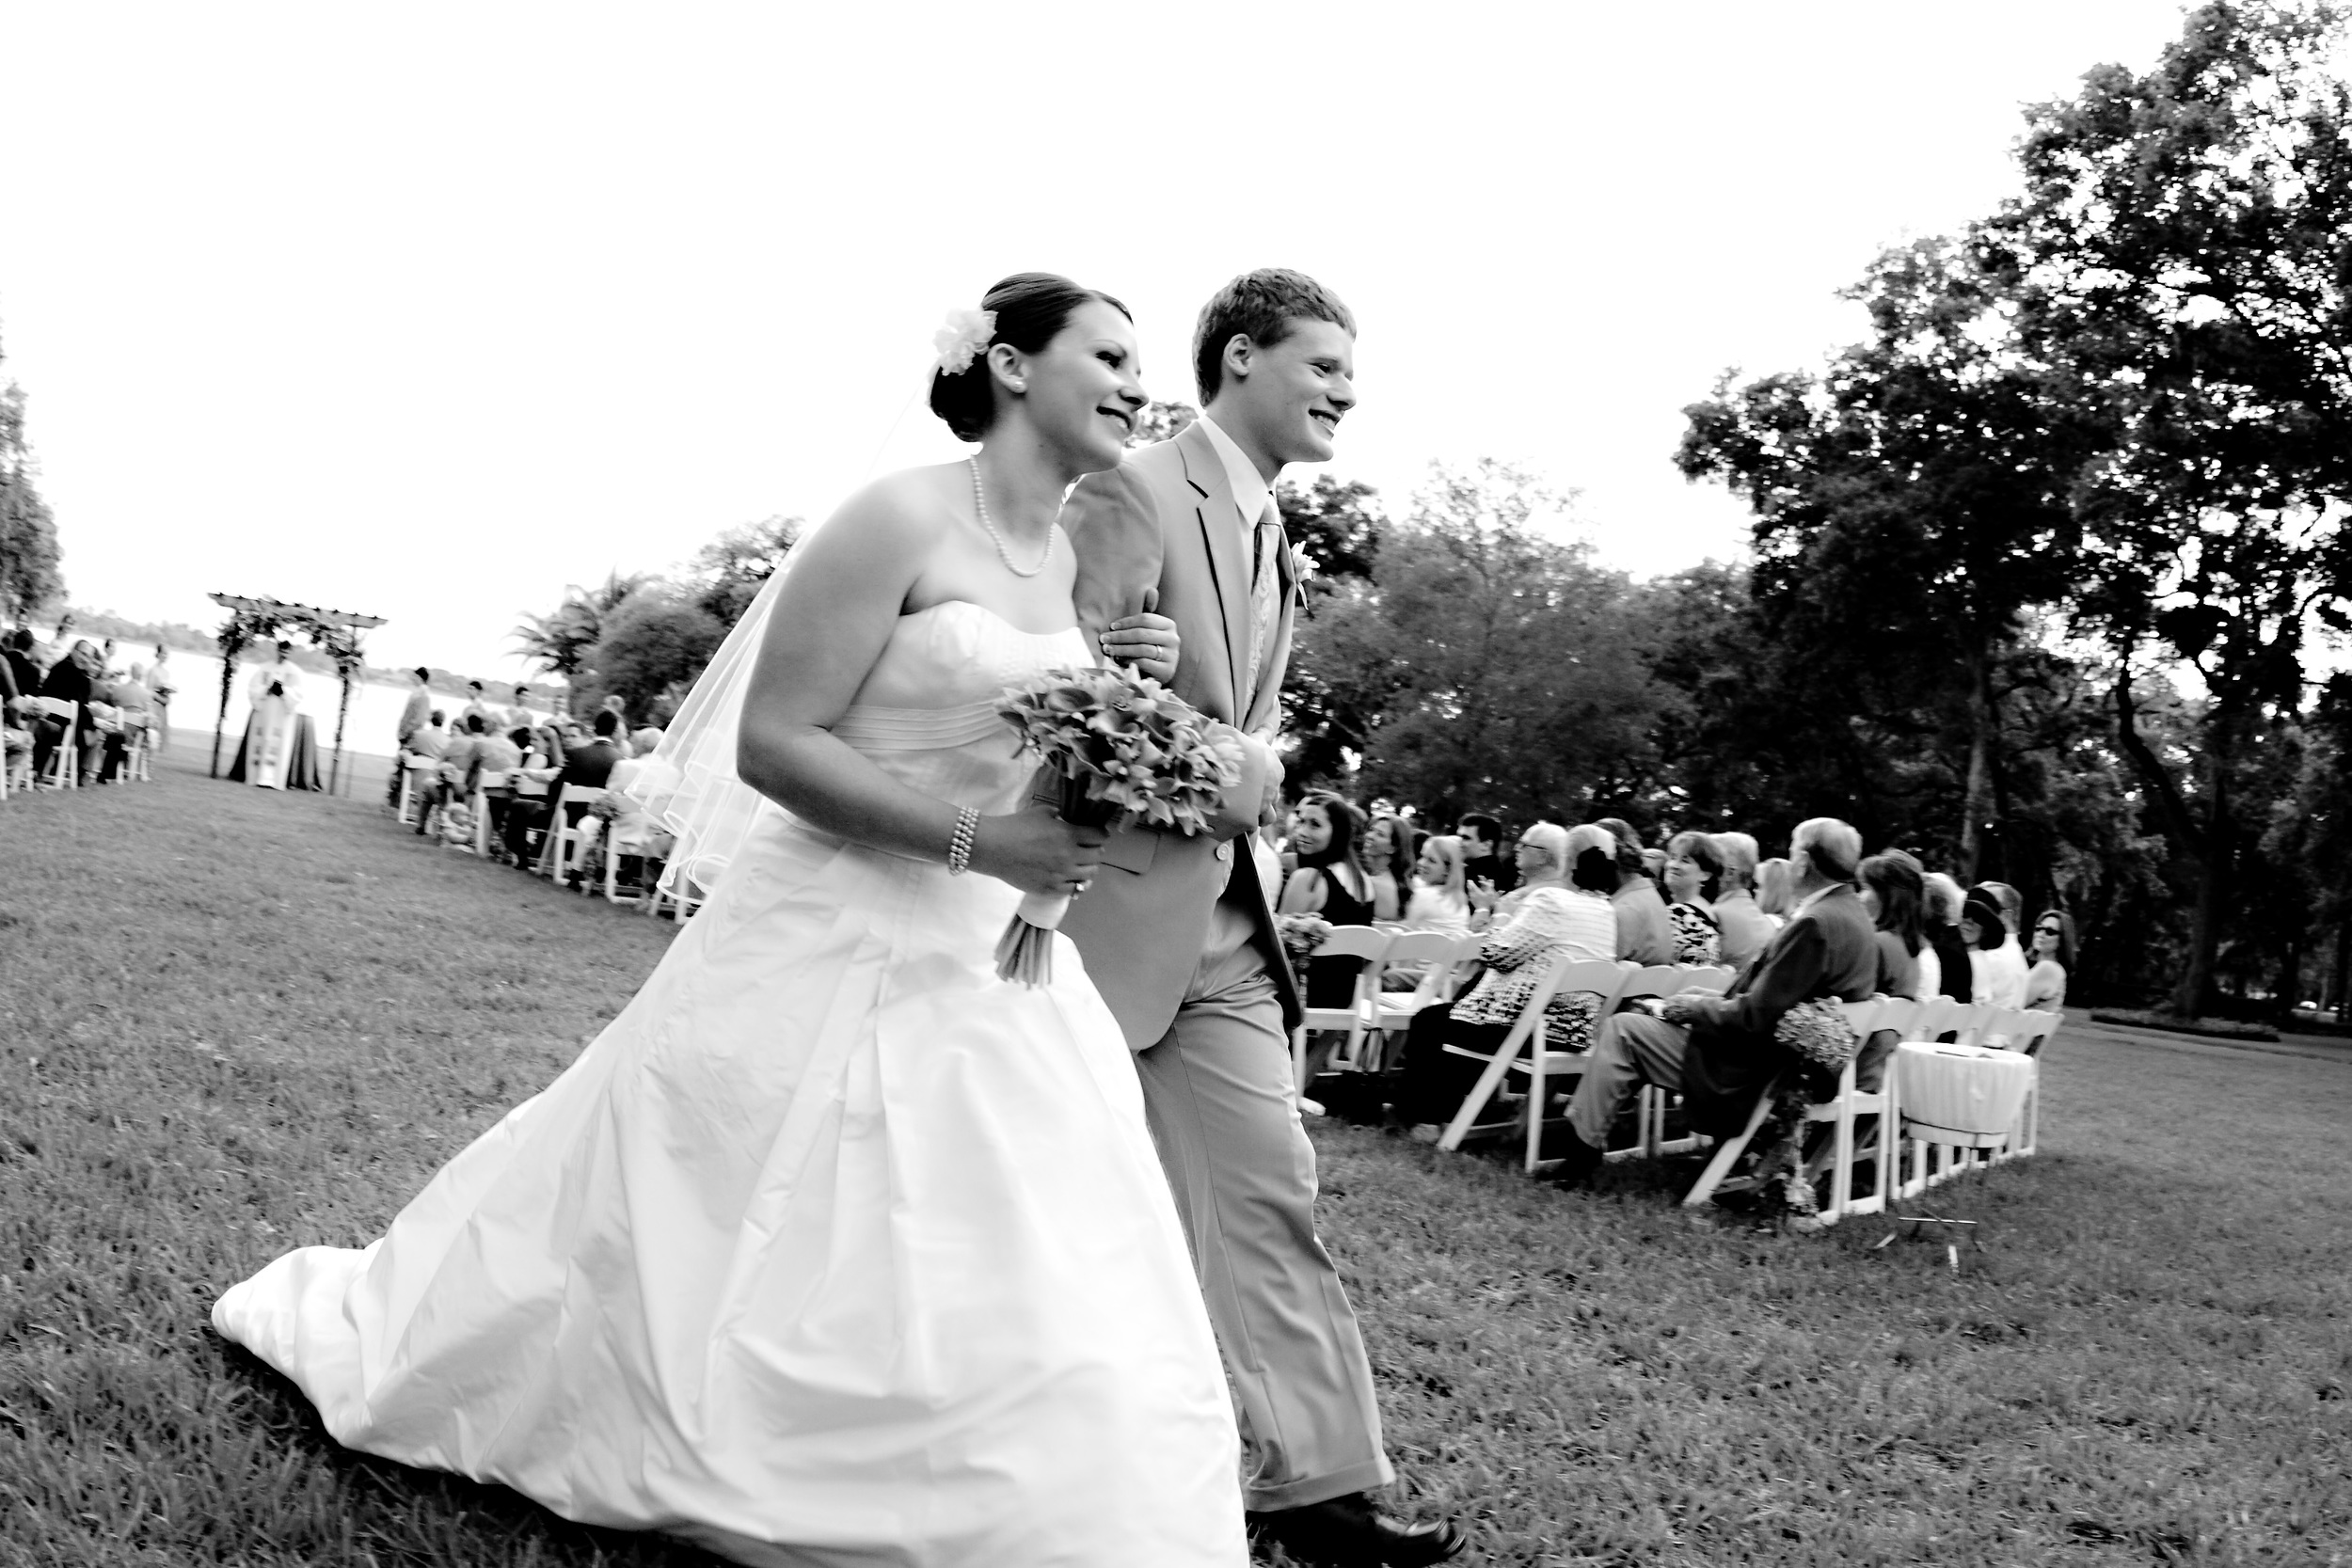 055_orlando_wedding_photographer_brian_adams_photographics.jpg